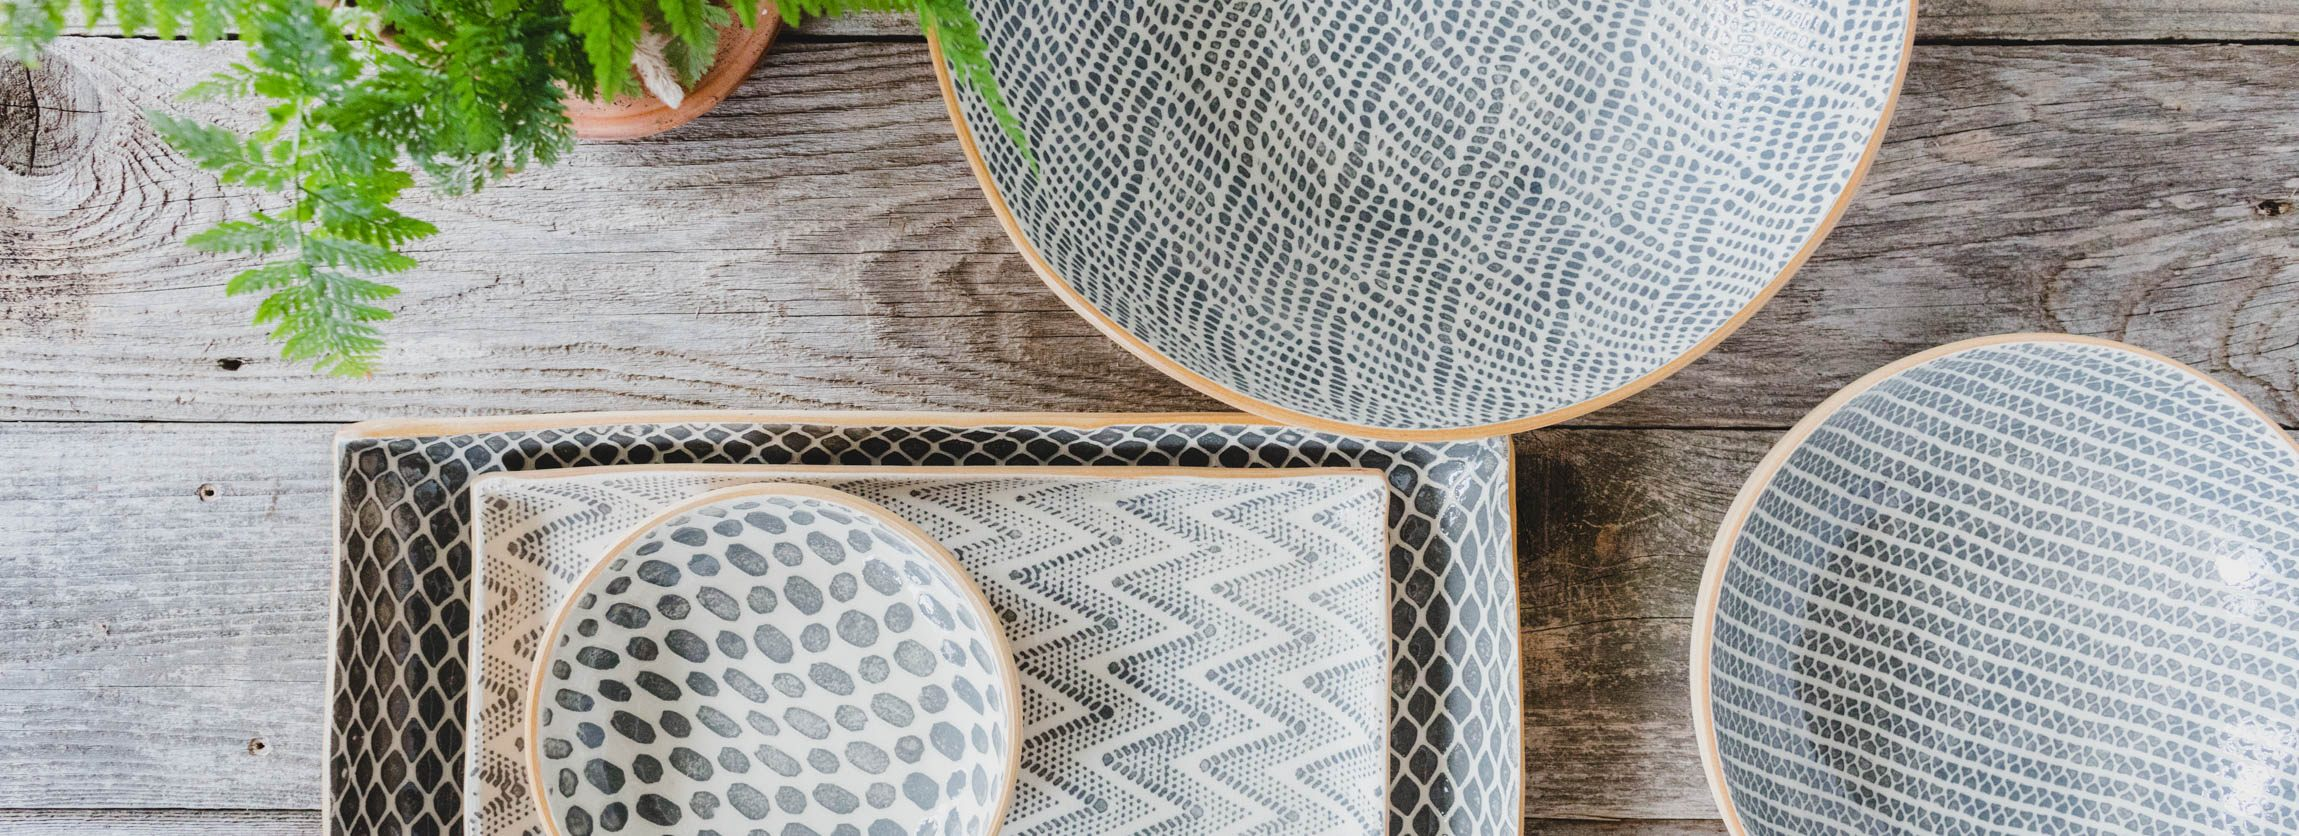 Terrafirma Ceramics Charcoal Bowls and Platters